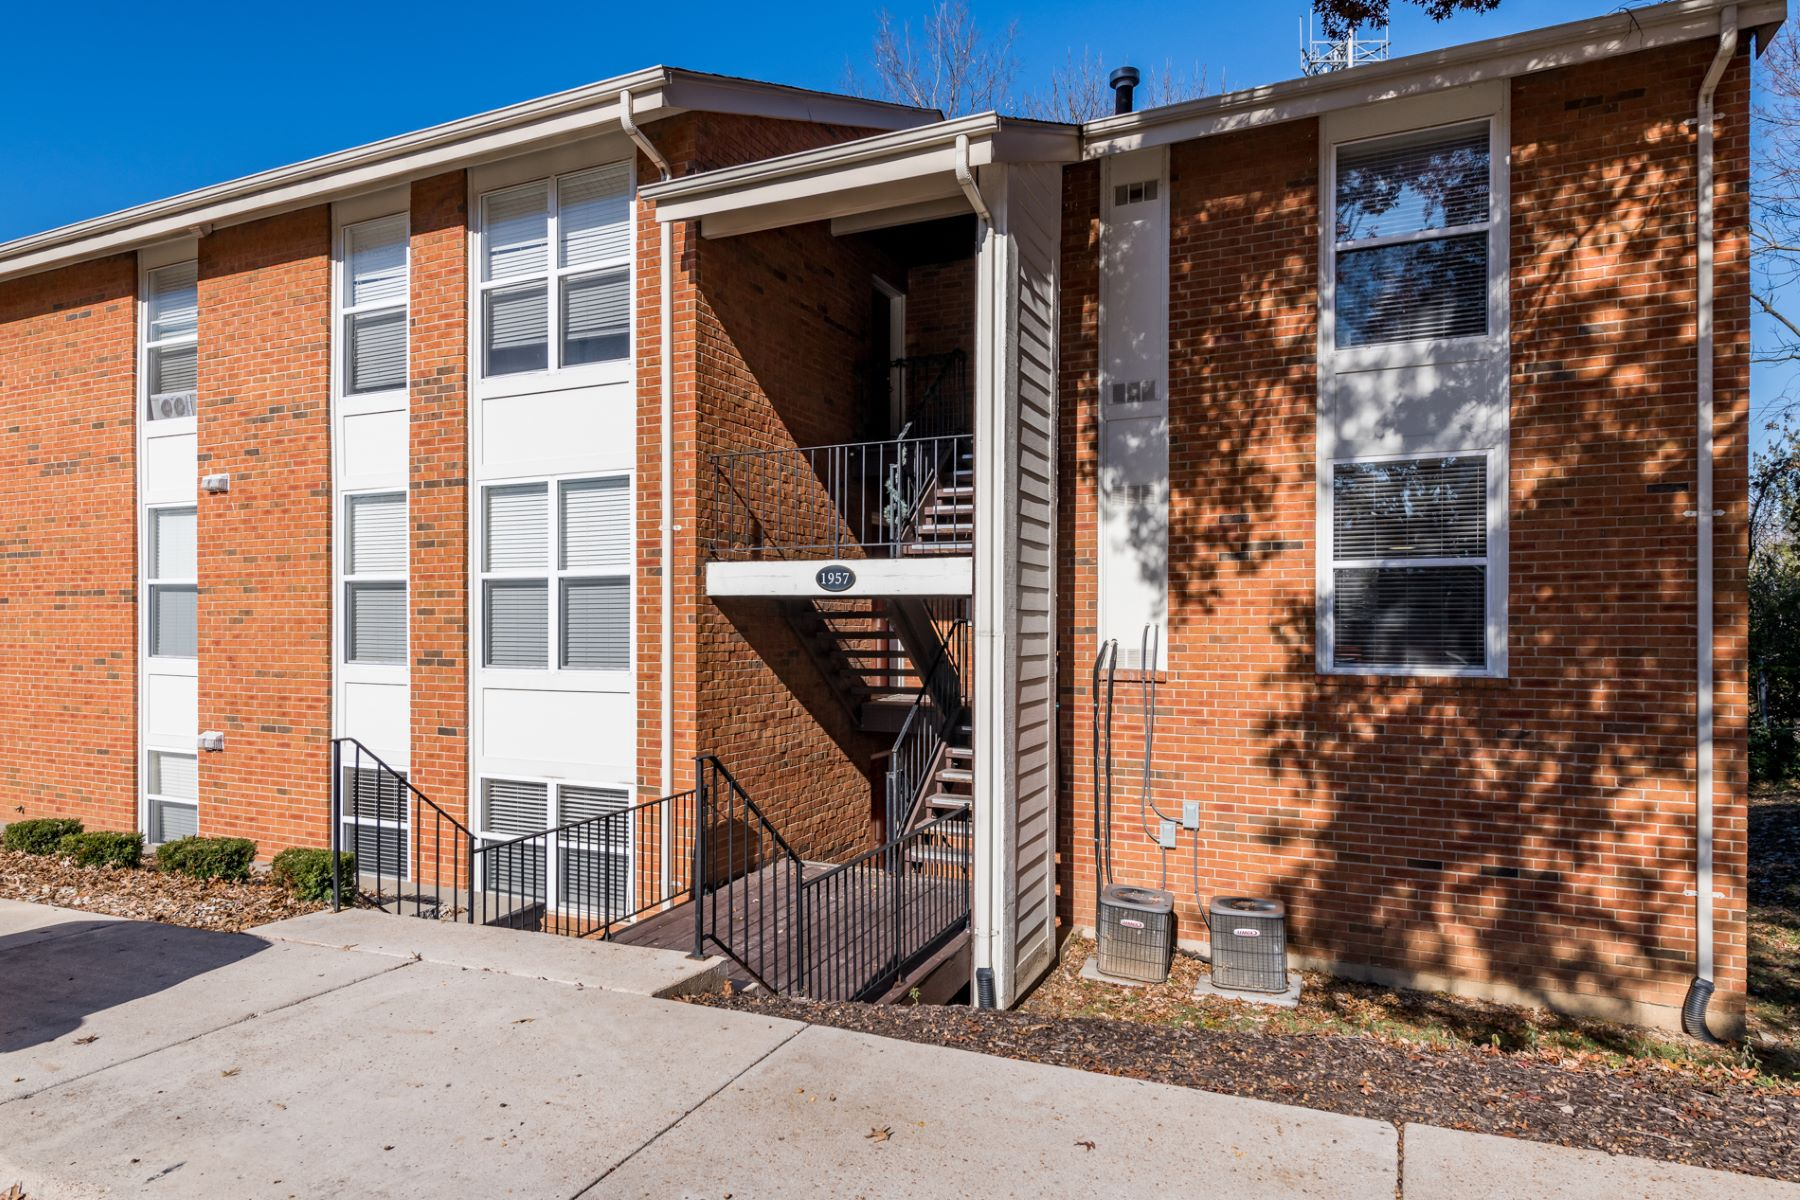 Condominium for Sale at Greenpoint Dr 1957 Greenpoint Dr #201 Kirkwood, Missouri 63122 United States